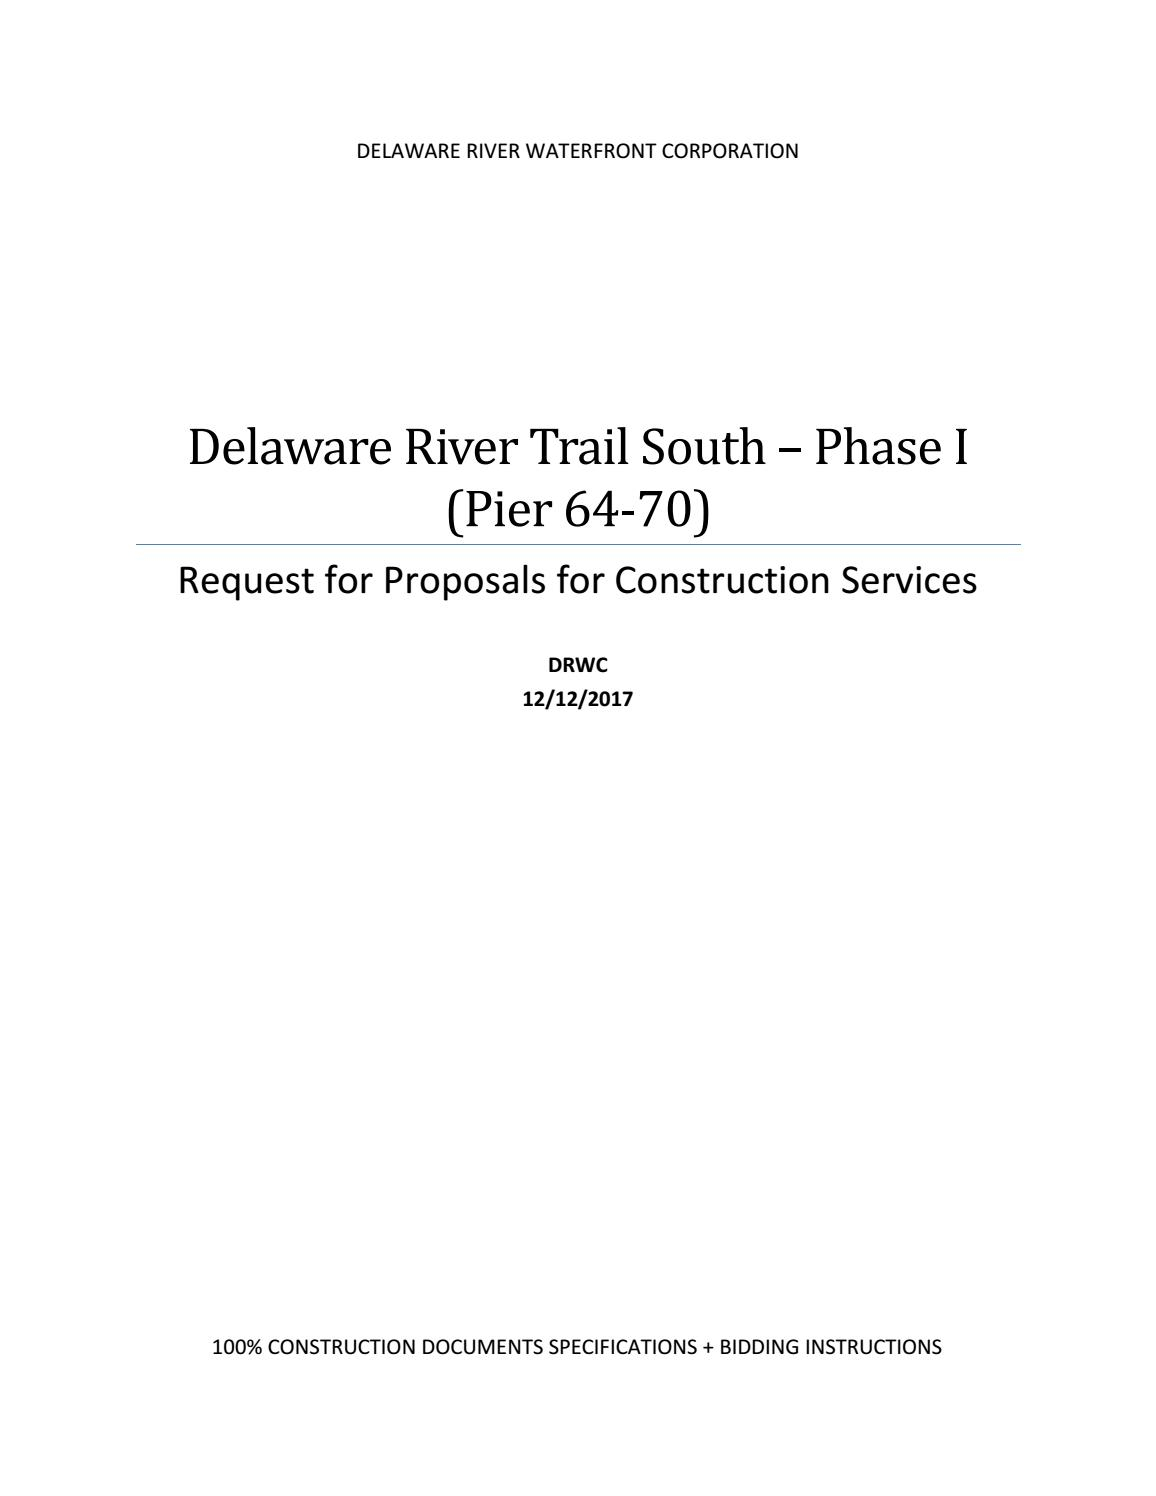 Spreader Beam Calculation Spreadsheet In Delaware River Trail South: Phase I Pier 6470 Bid Book